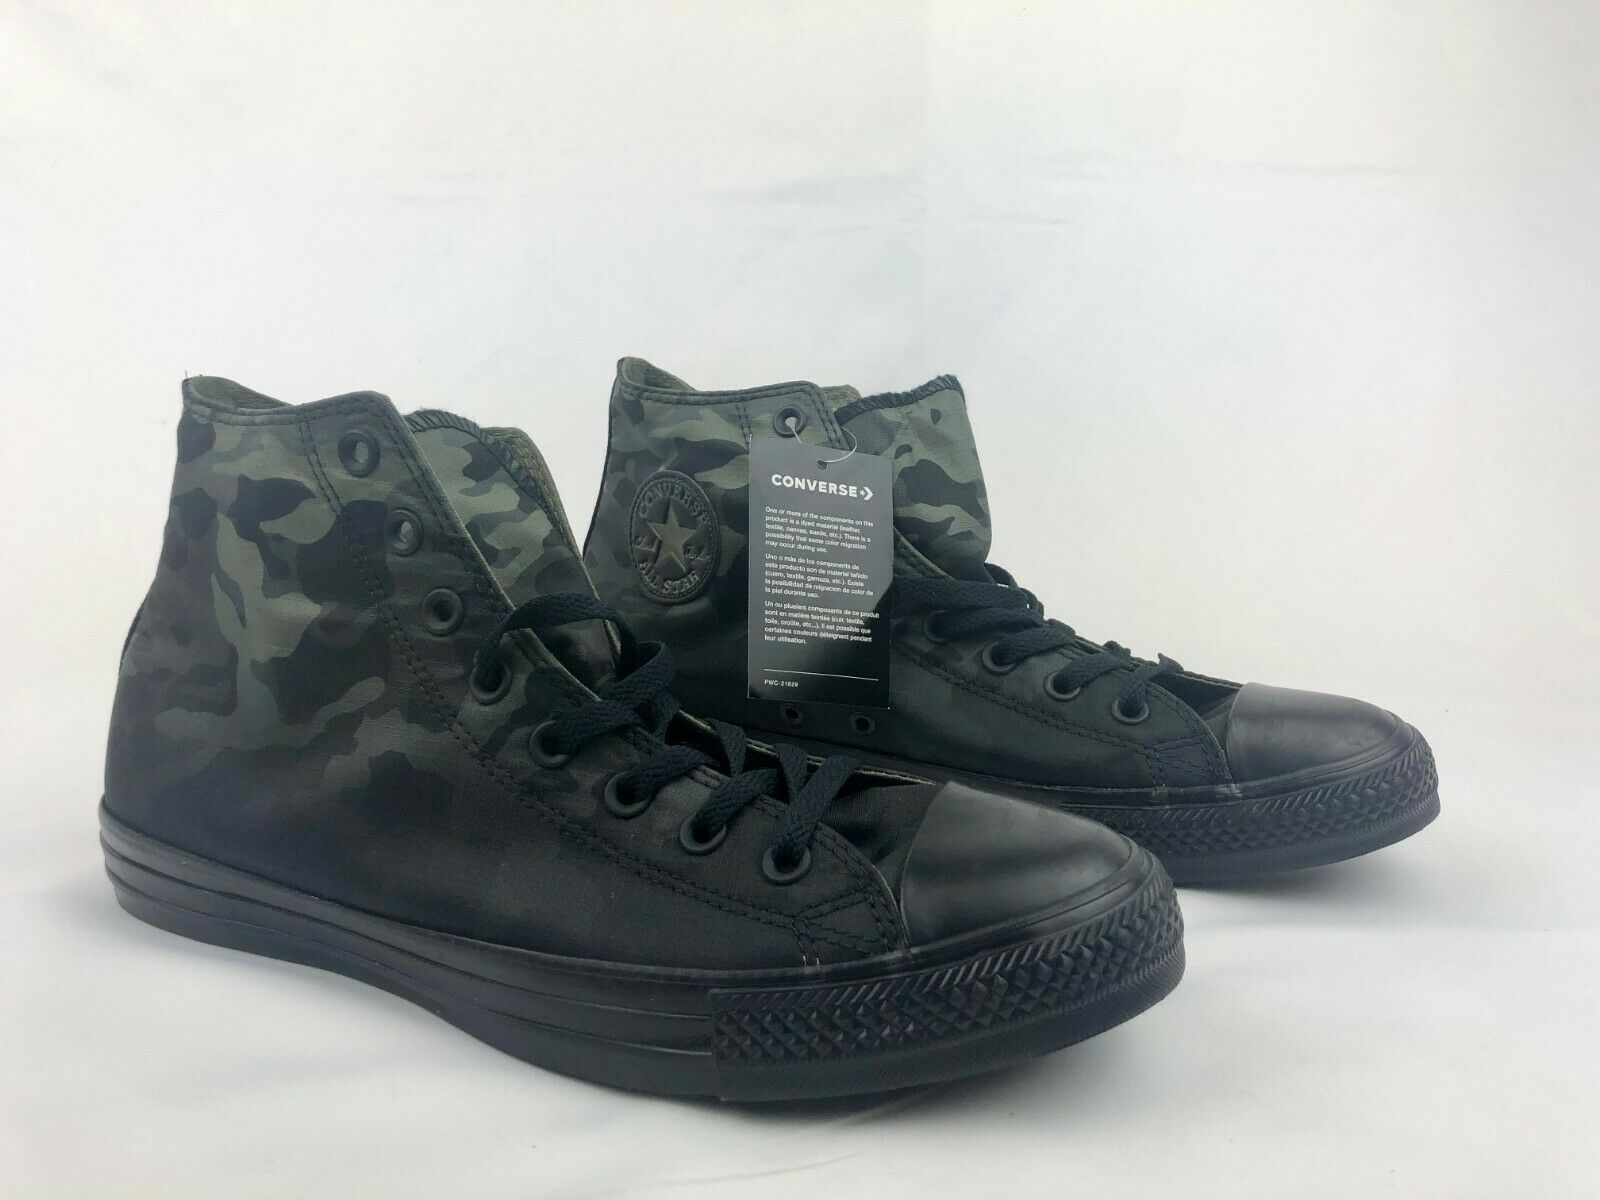 Converse Chuck Taylor All Star High Top Camo Camouflage Multi sz 163241C